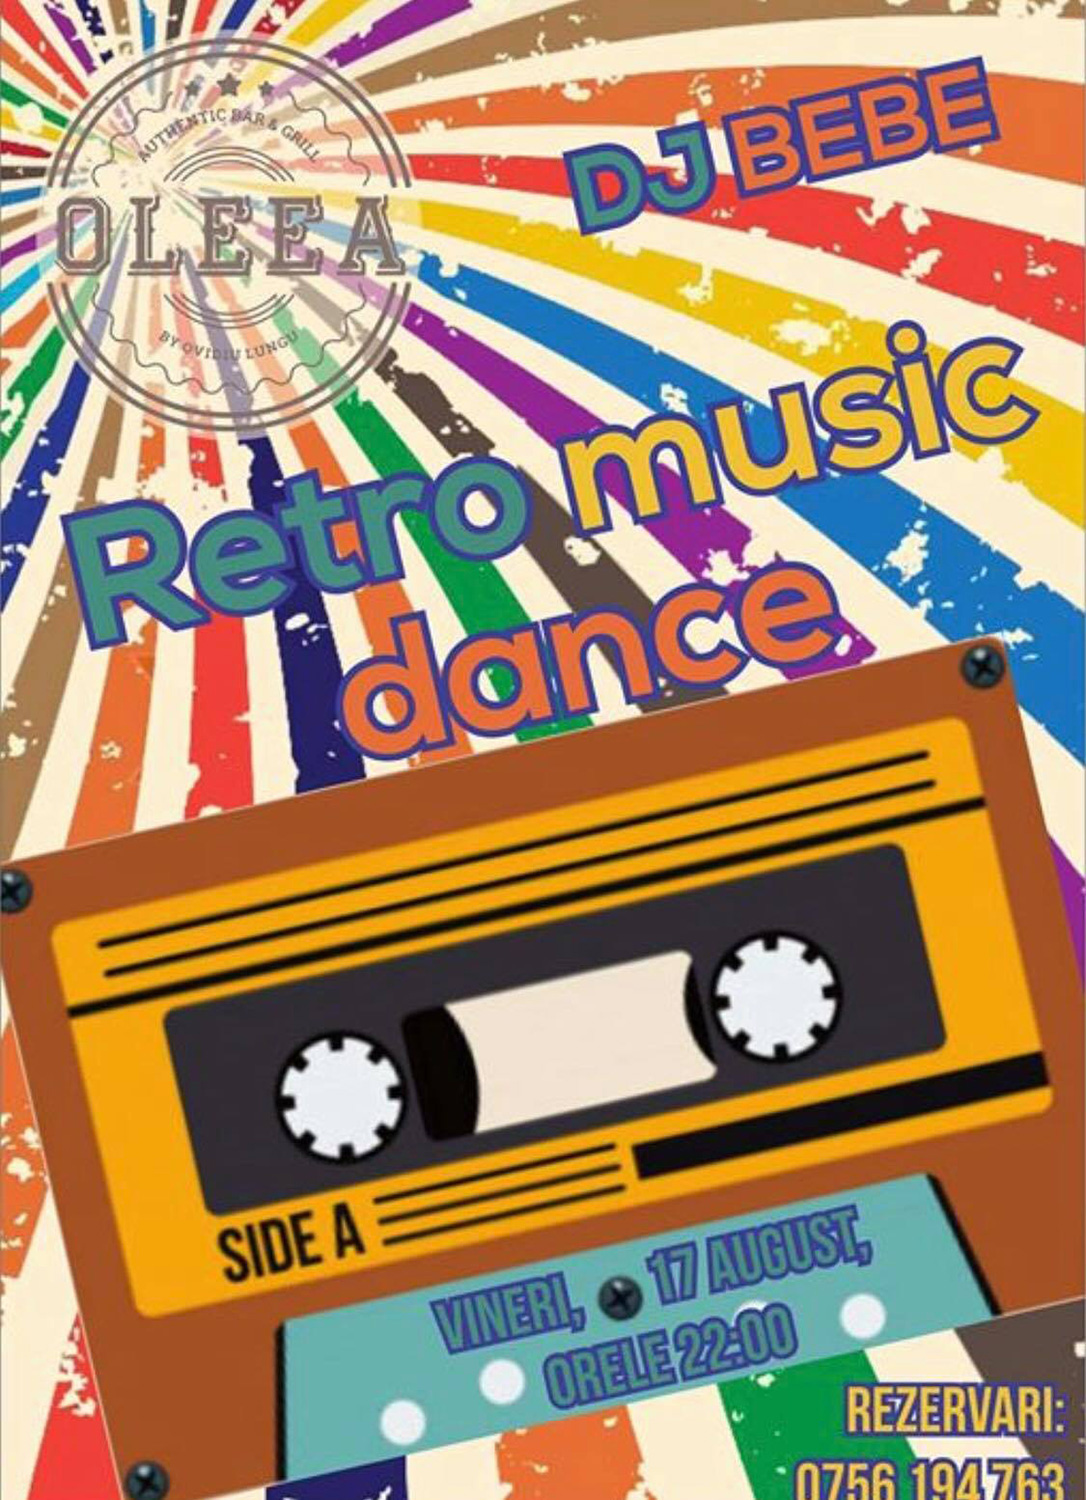 Retro Music Dance